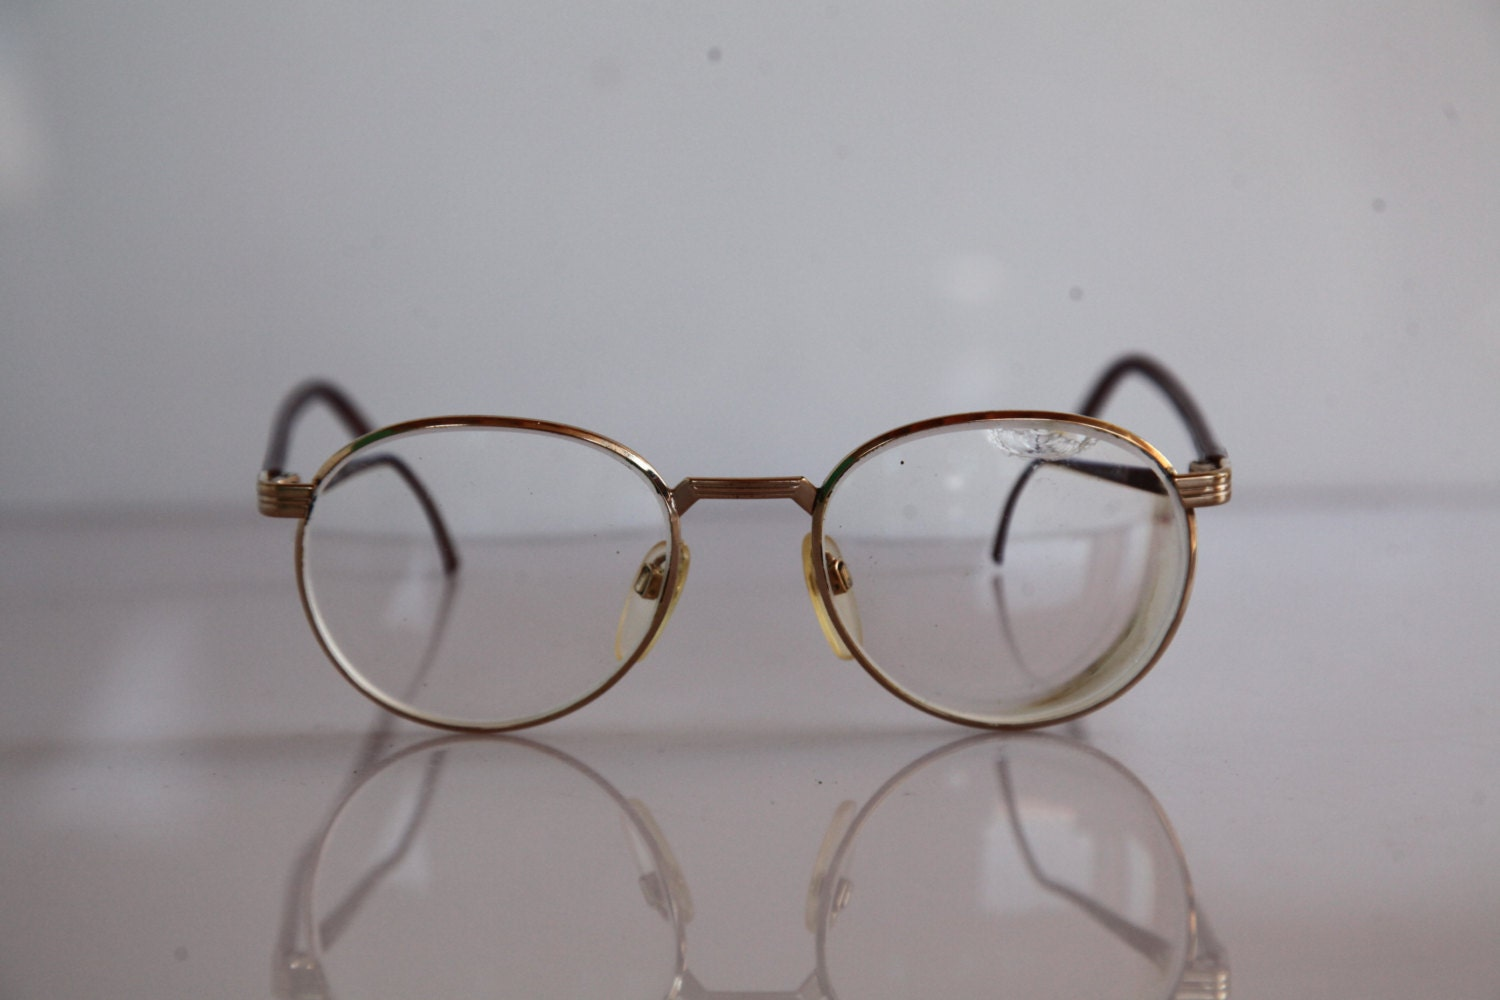 Vintage SILHOUETTE eyewear Gold Frame Brown temples Clear